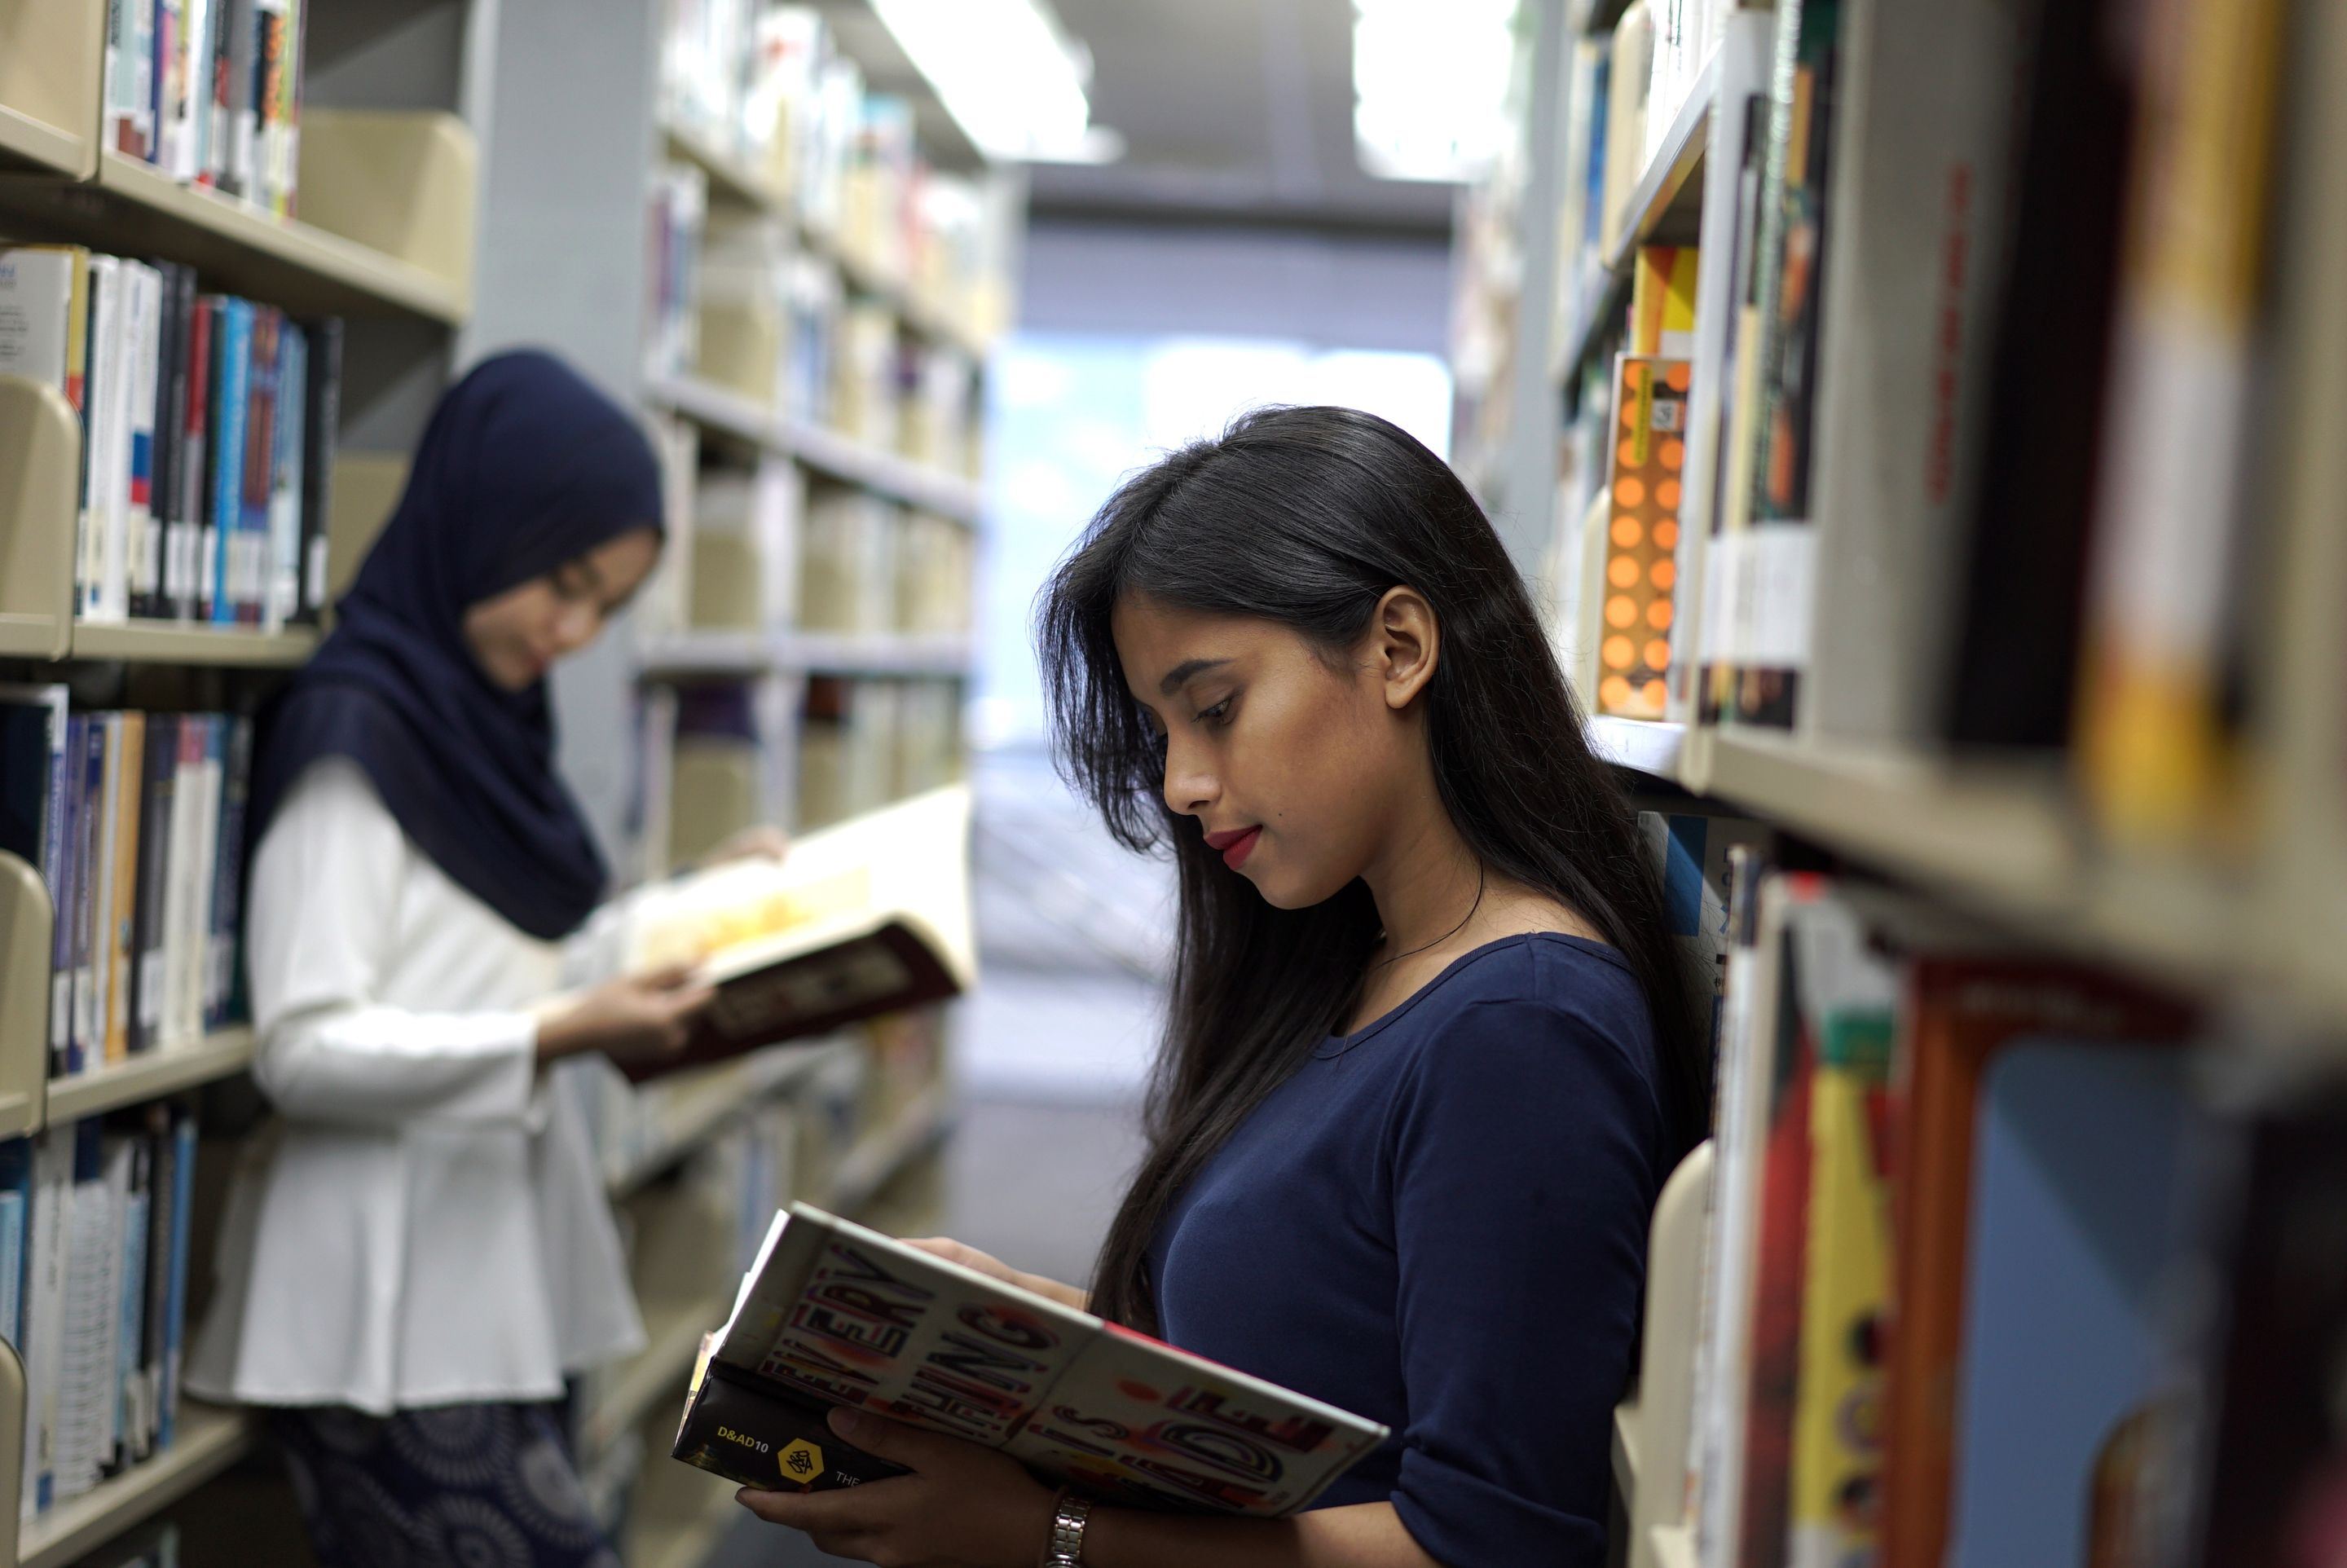 Two high school students reading in the library